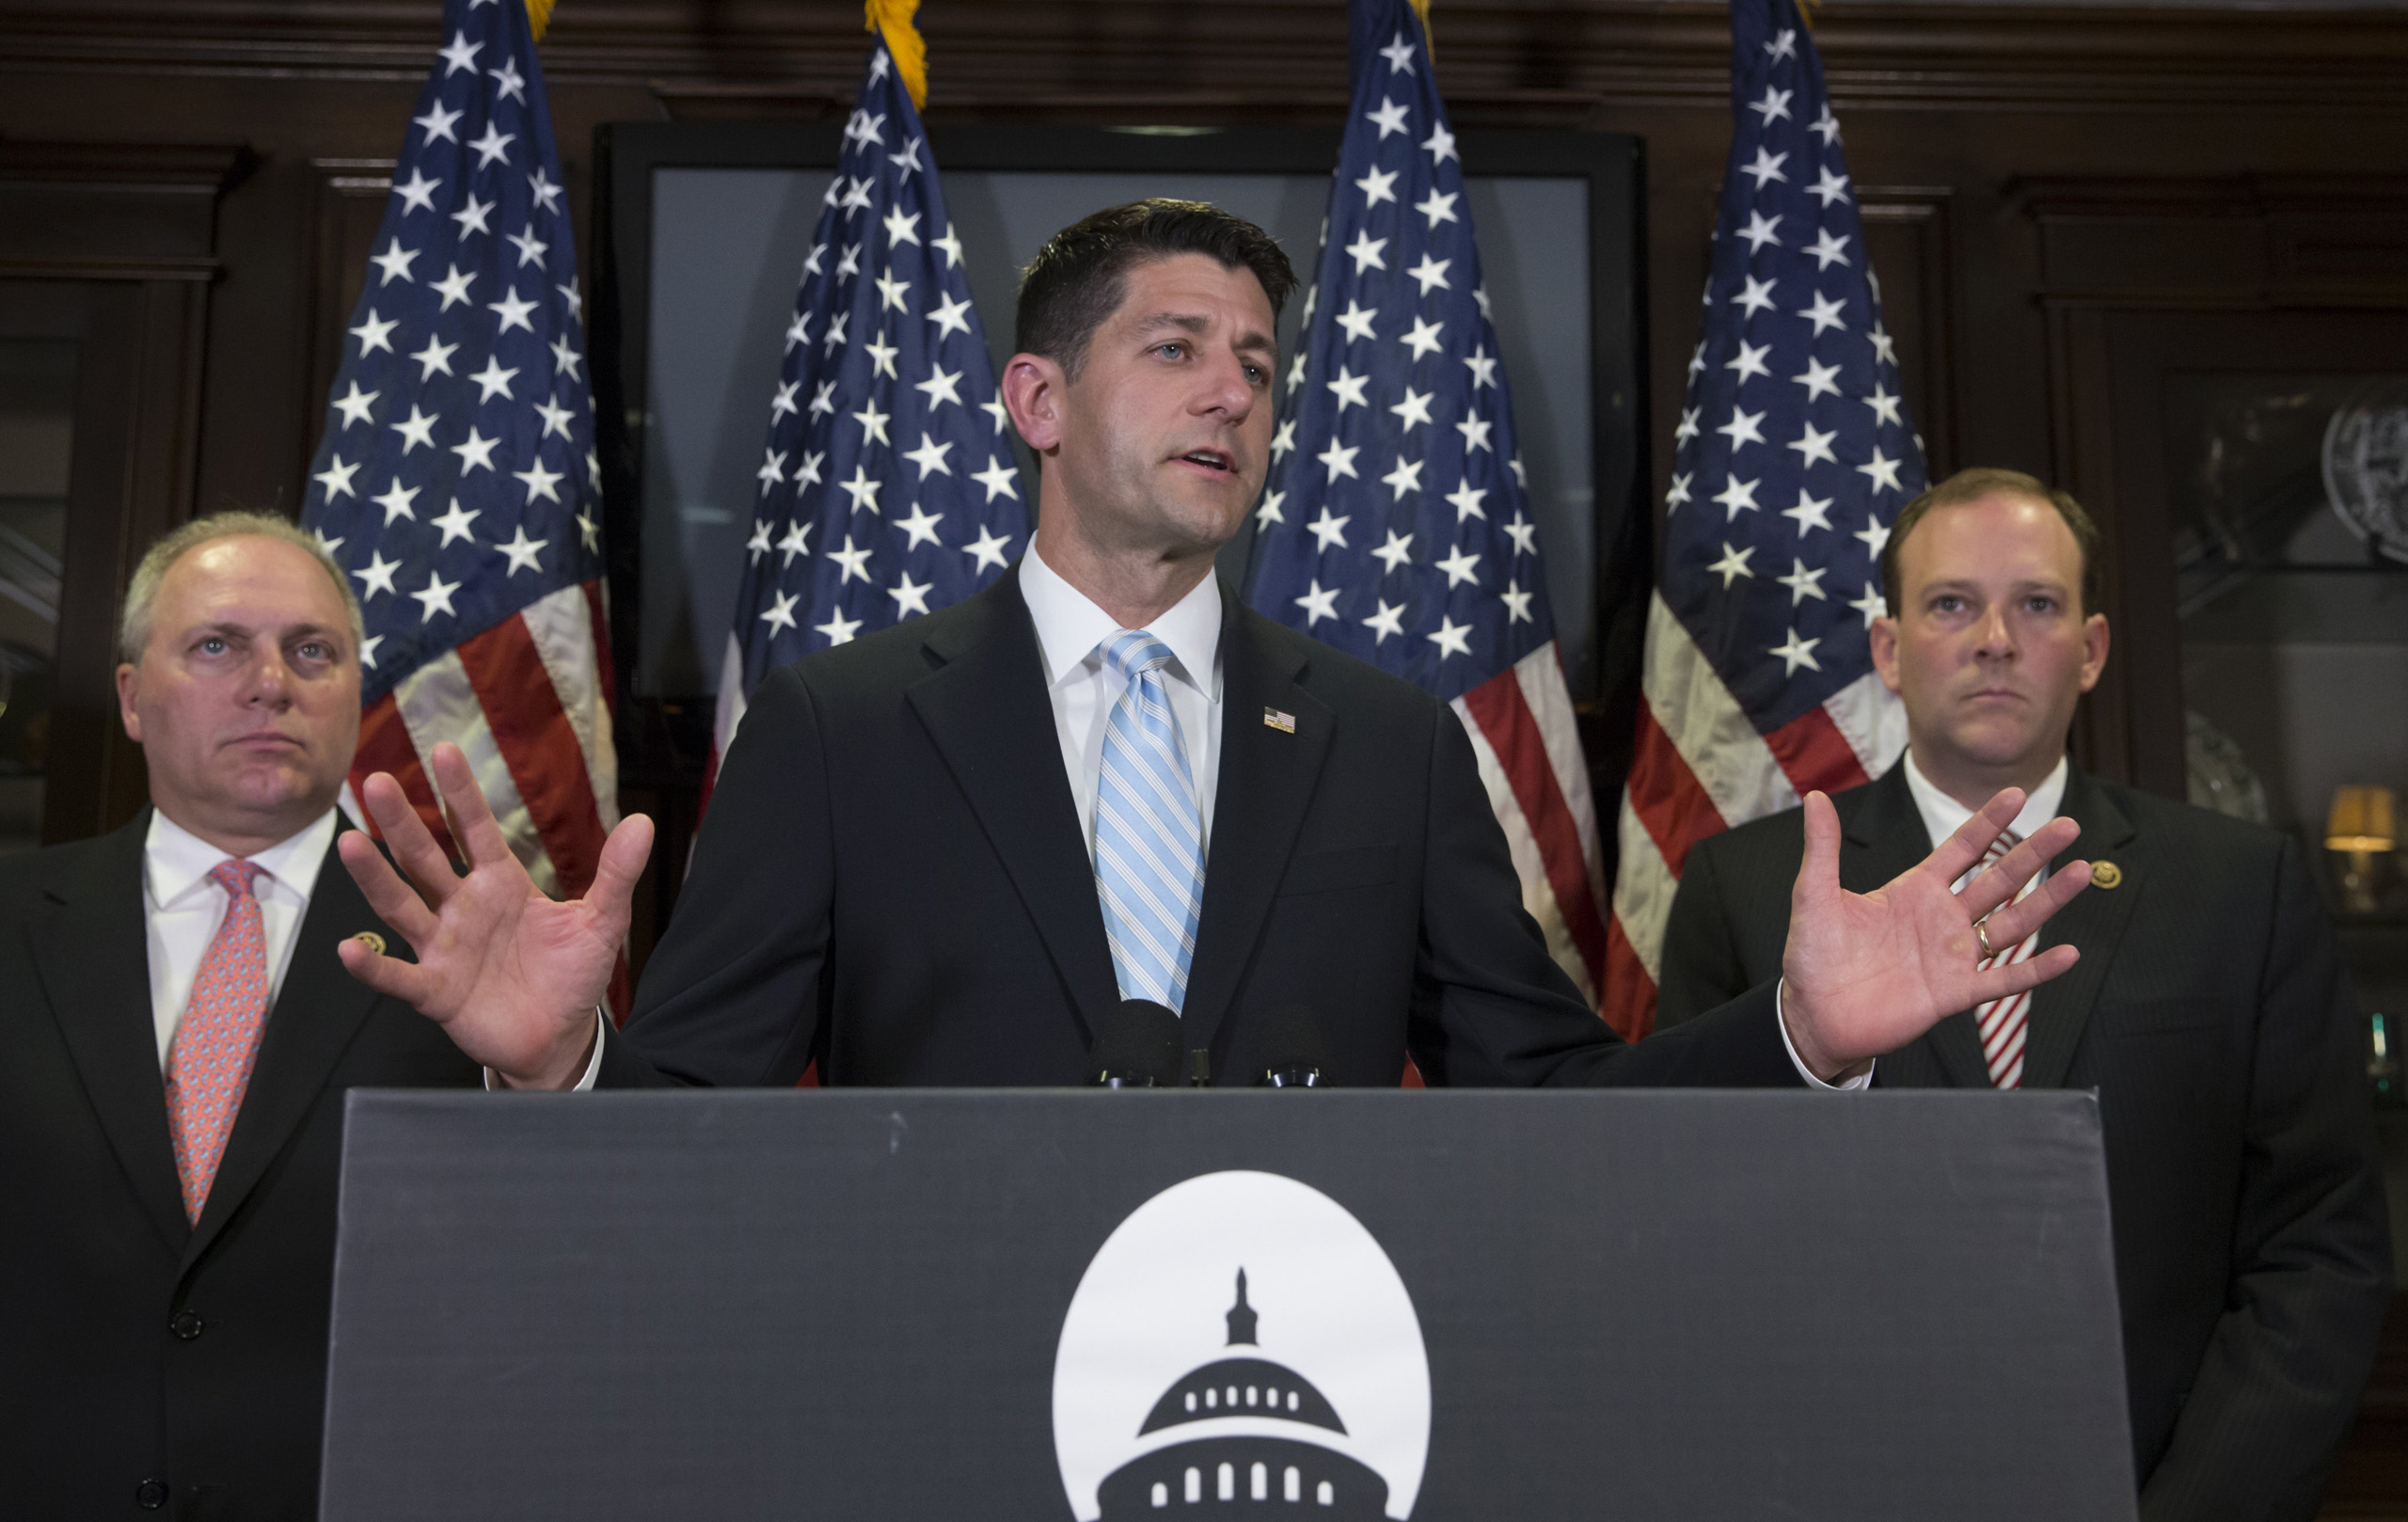 House Speaker Paul Ryan of Wis. tells reporters it looks like Hillary Clinton got preferential treatment from the FBI in its investigation of the former secretary of state's use of a private email server for government business, during a news conference at Republican National Committee Headquarters on Capitol Hill in Washington, D.C. on July 6, 2016.